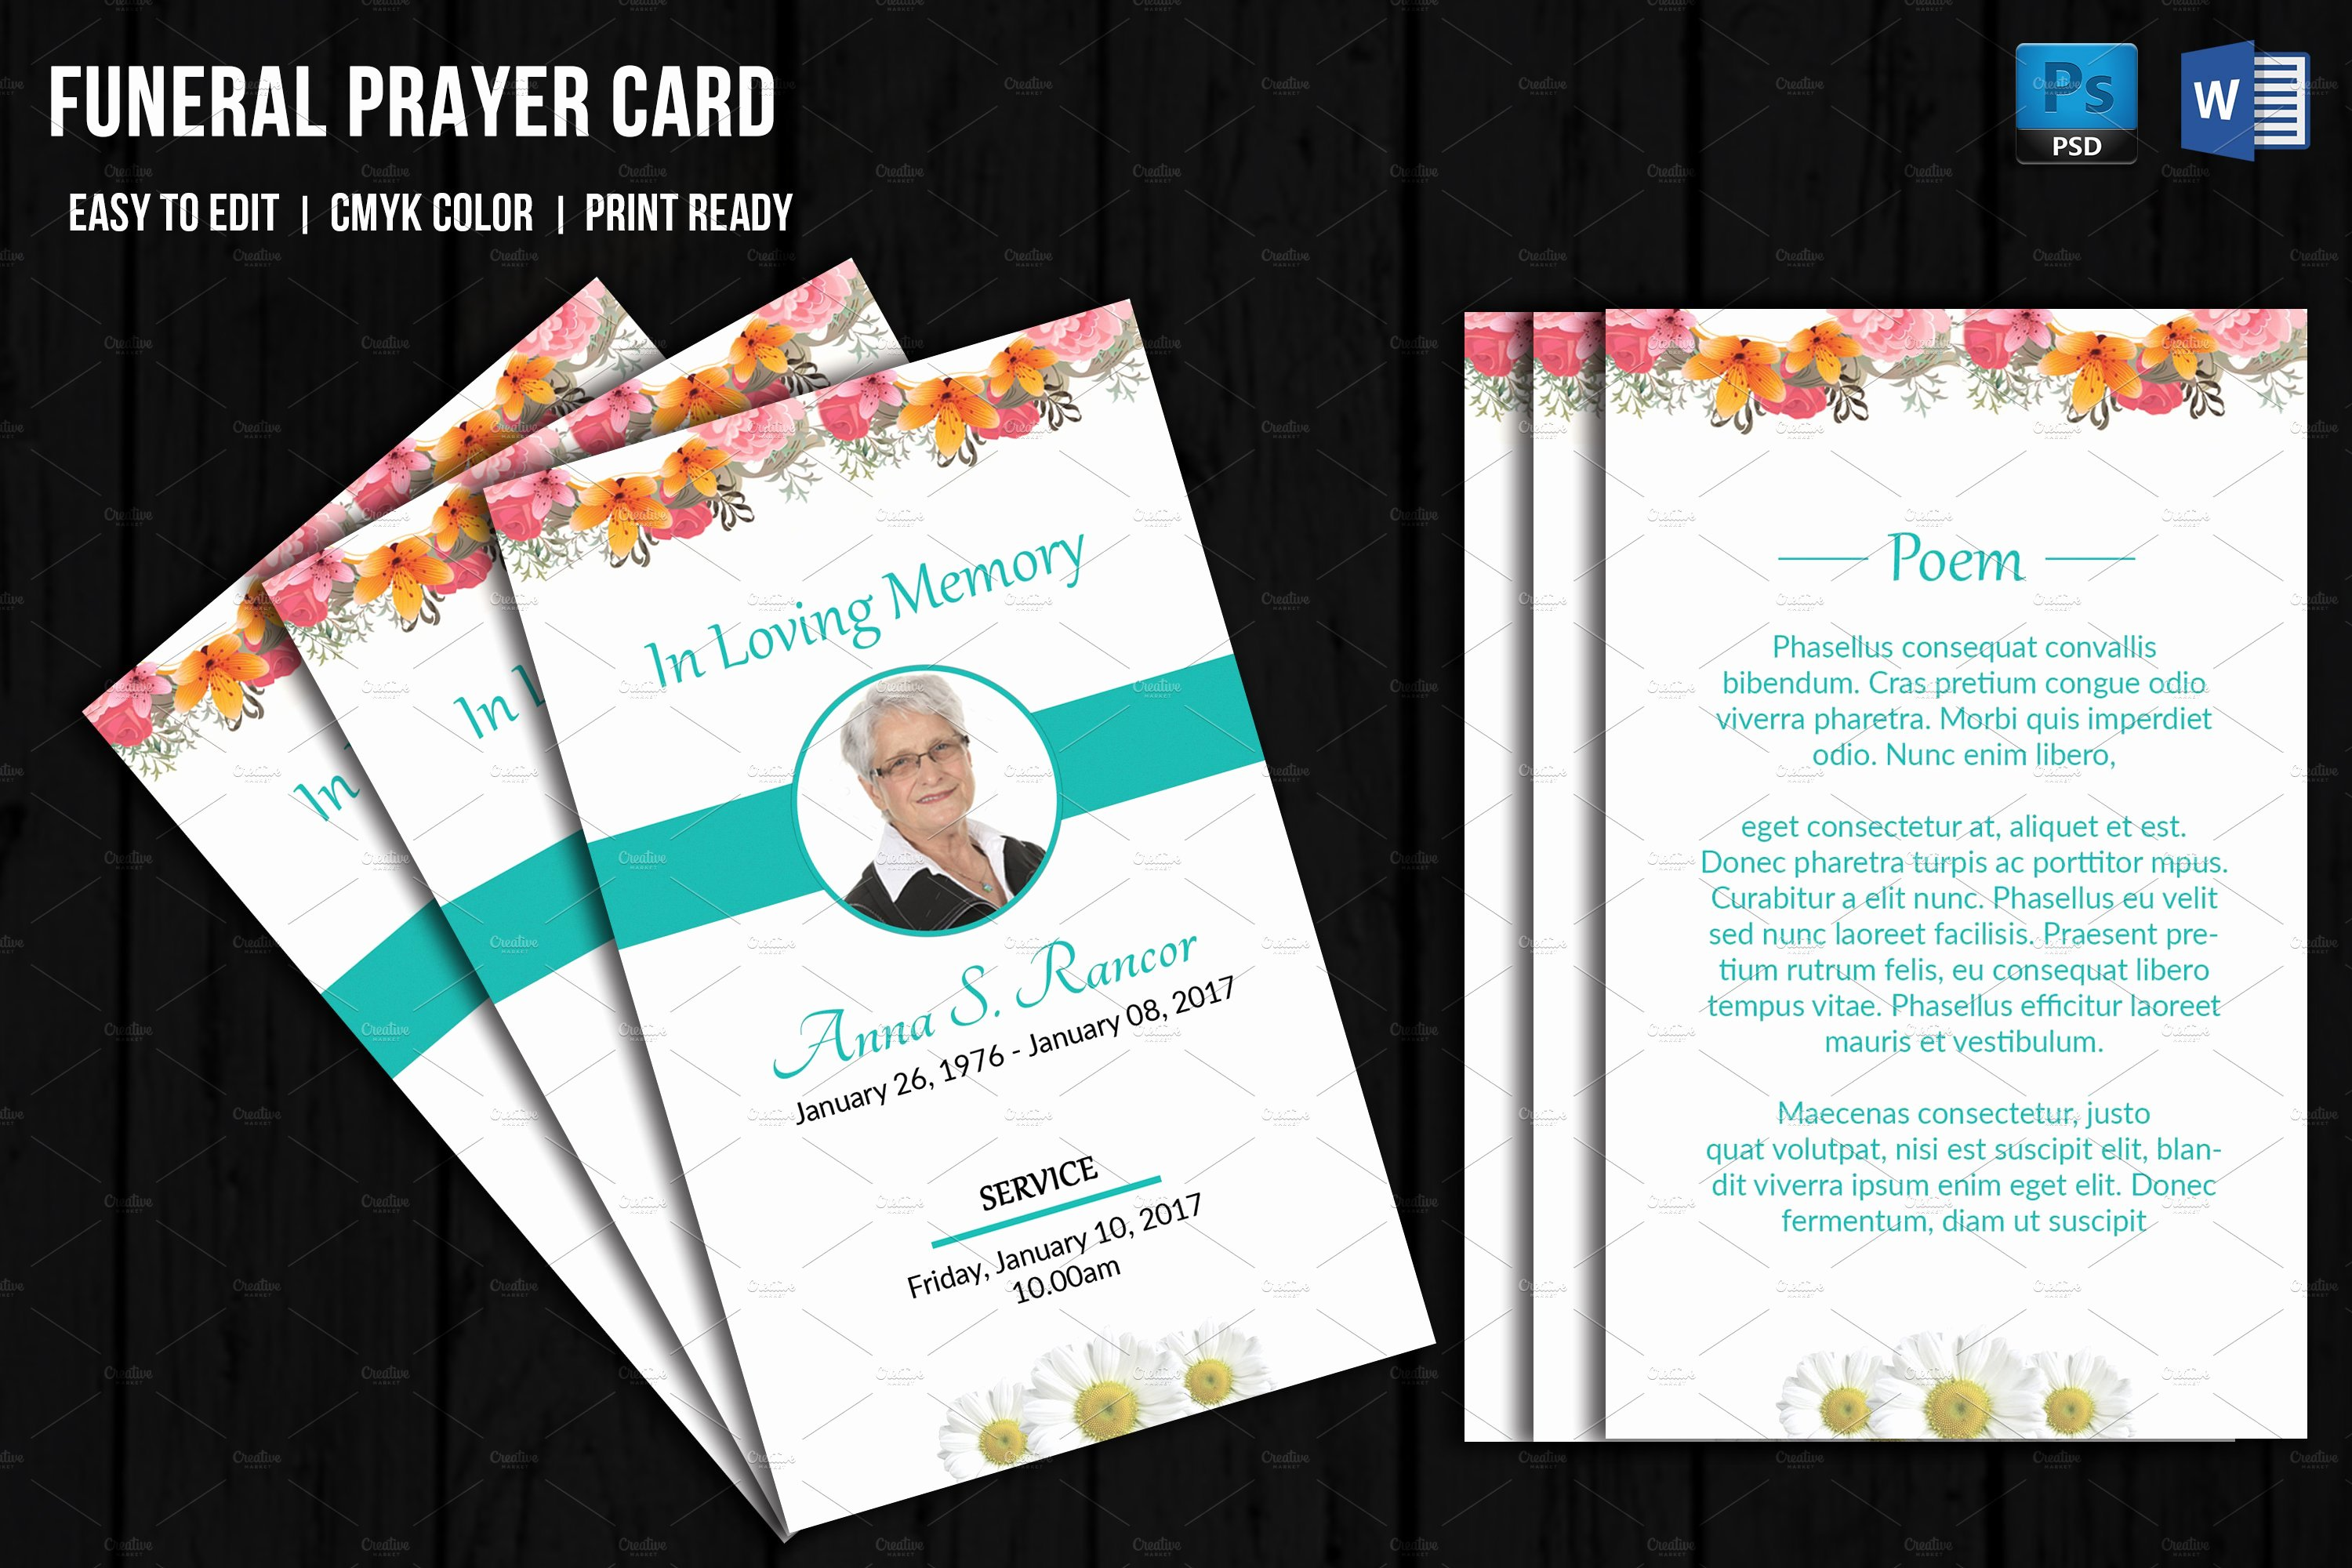 Memorial Cards for Funeral Template Free Lovely Funeral Prayer Card Template V656 Card Templates